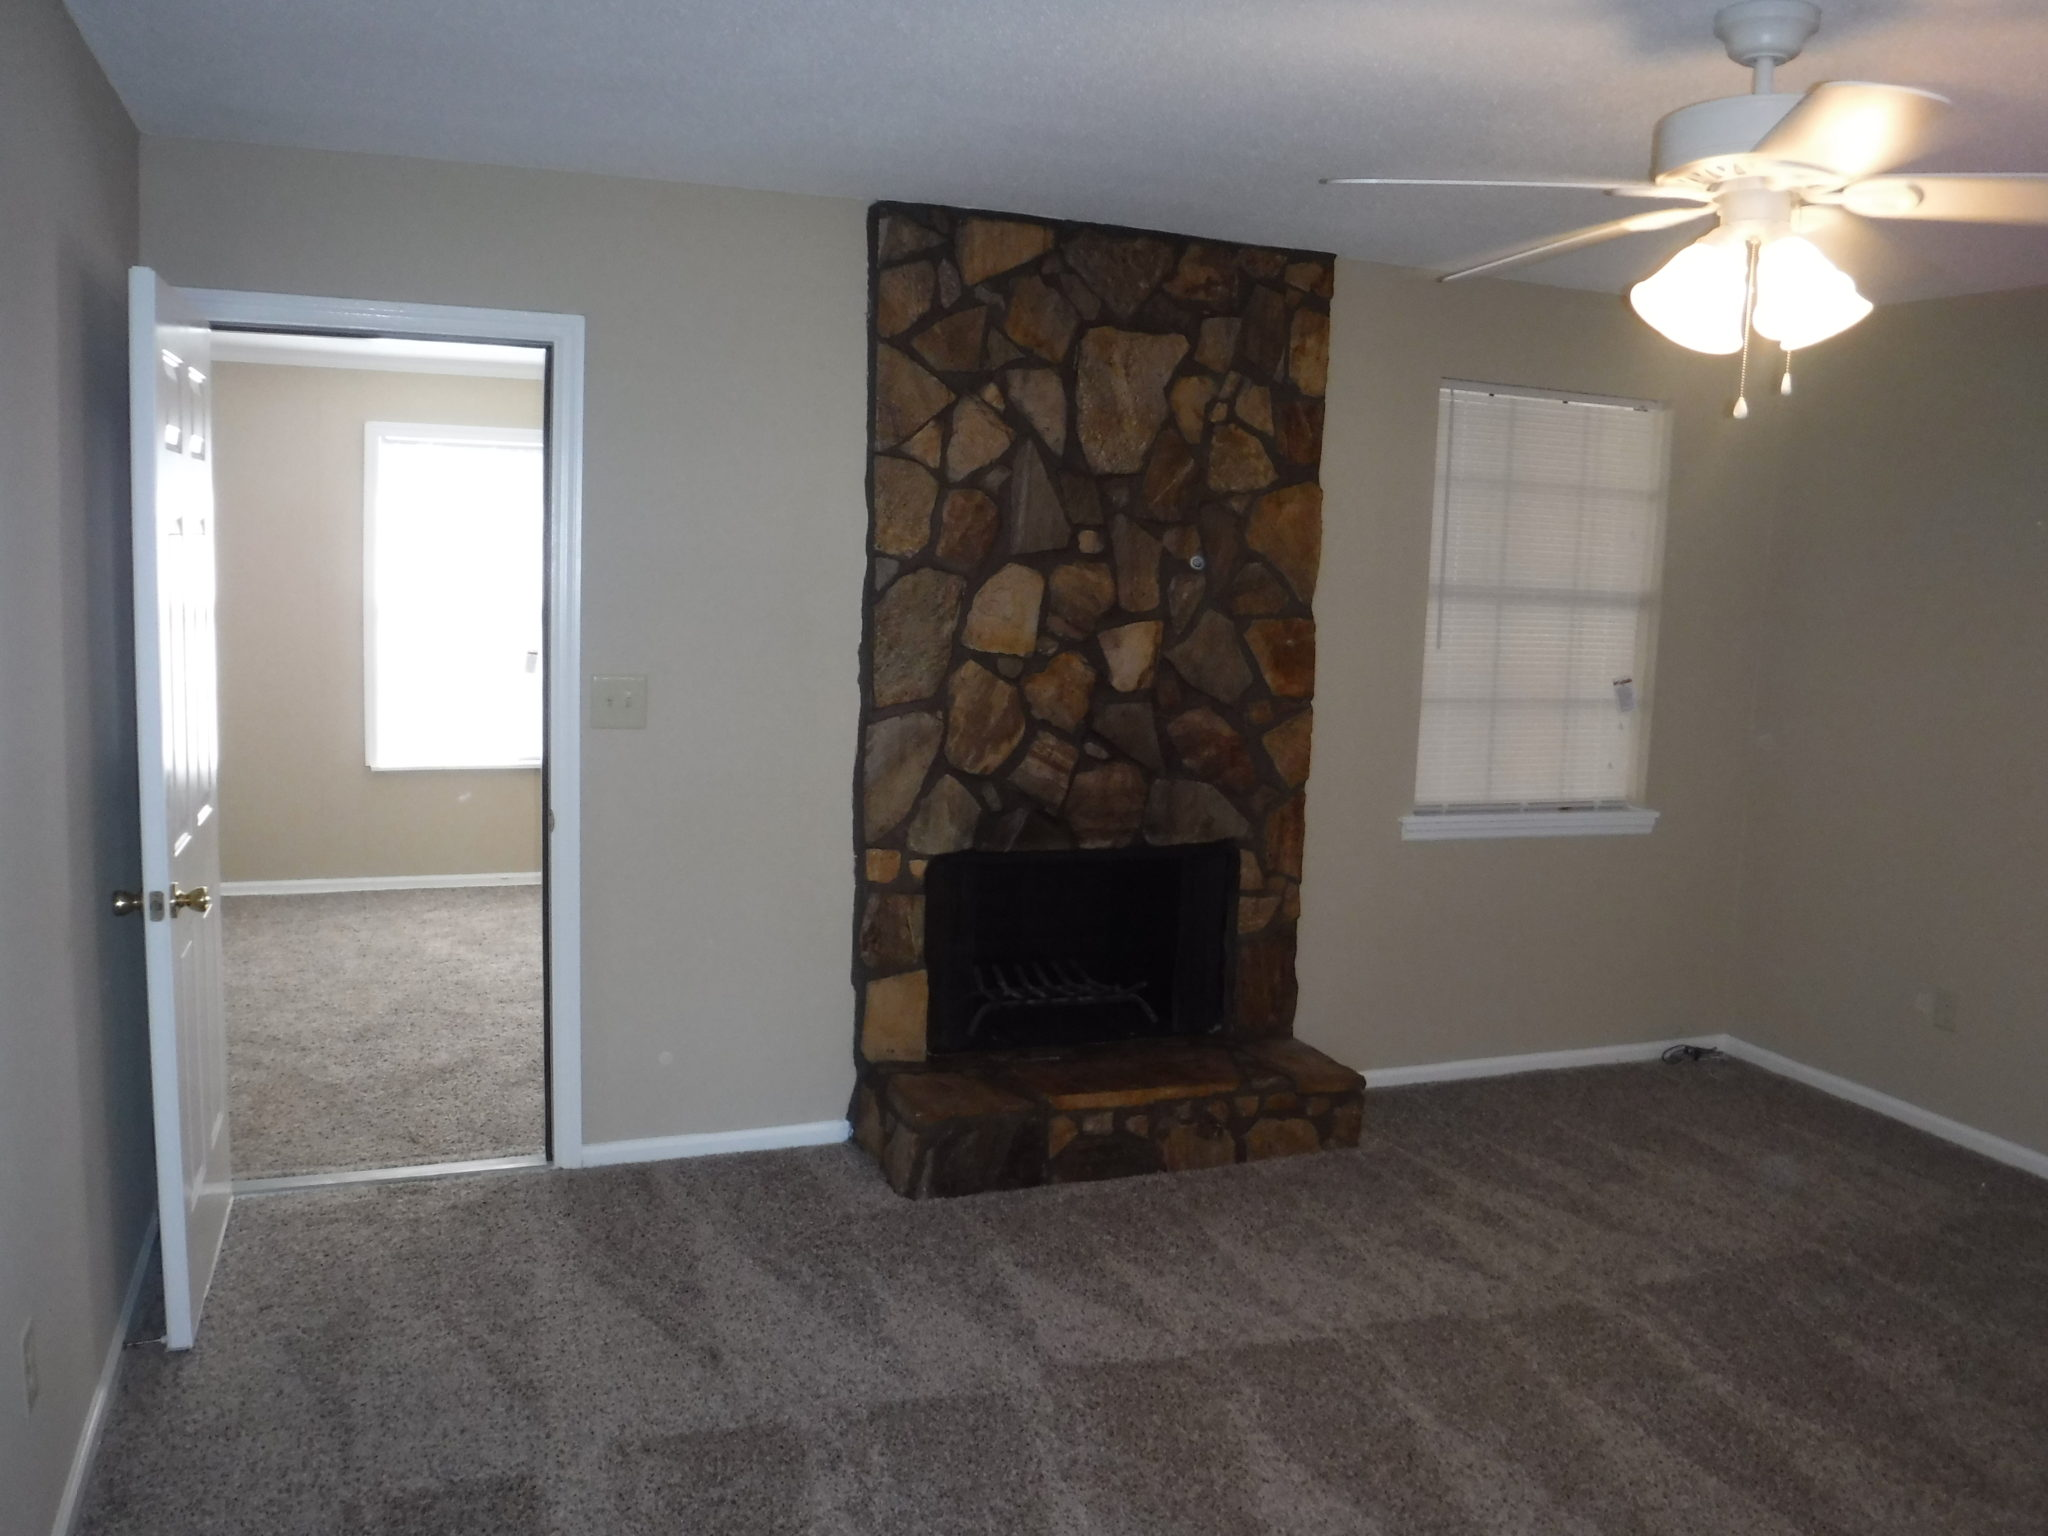 14 x 15 living room with brick fireplace and new ceiling